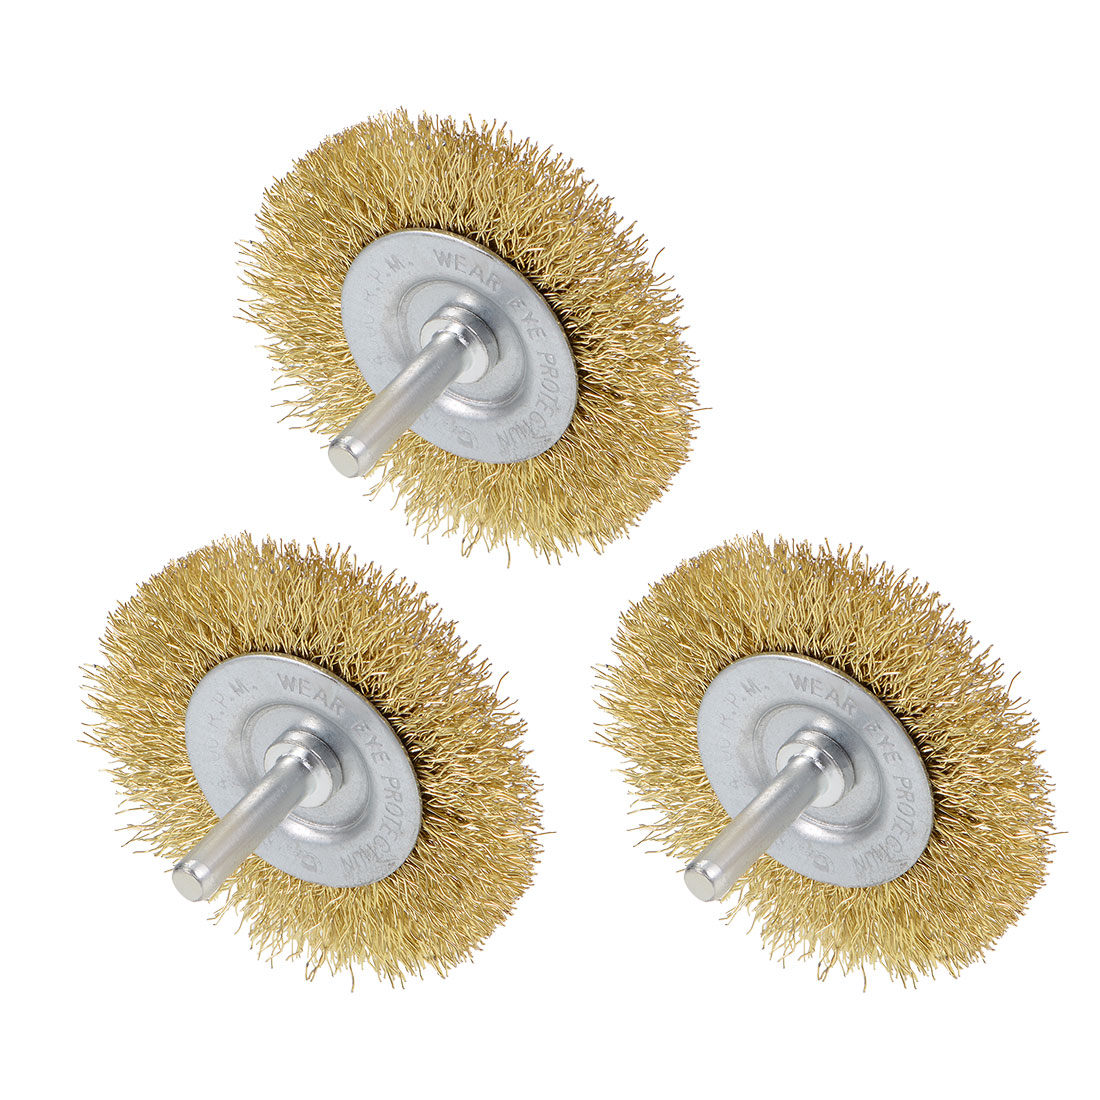 2-1/2 Inch Wire Wheel Brush Bench Brass Plated Crimped Steel 1/4-Inch Shank 3pcs